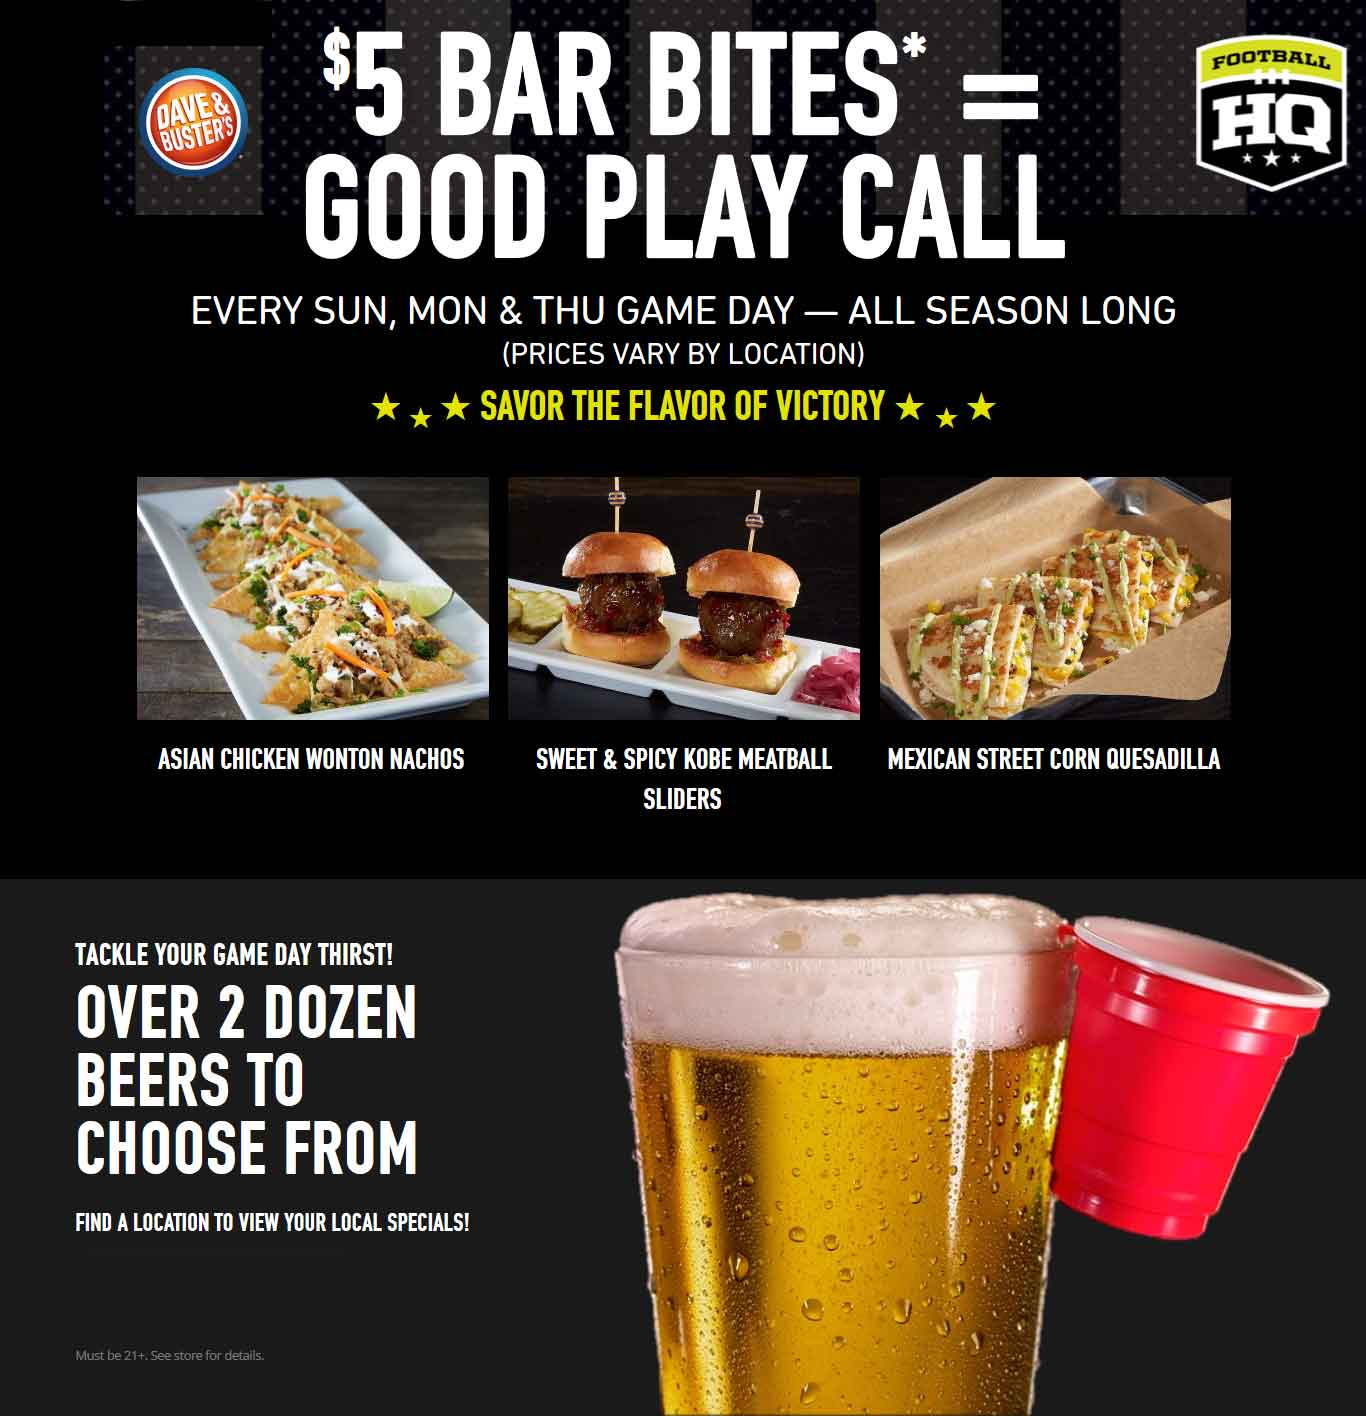 Dave & Busters Coupon February 2020 $5 bar bites at Dave & Busters gaming restaurants